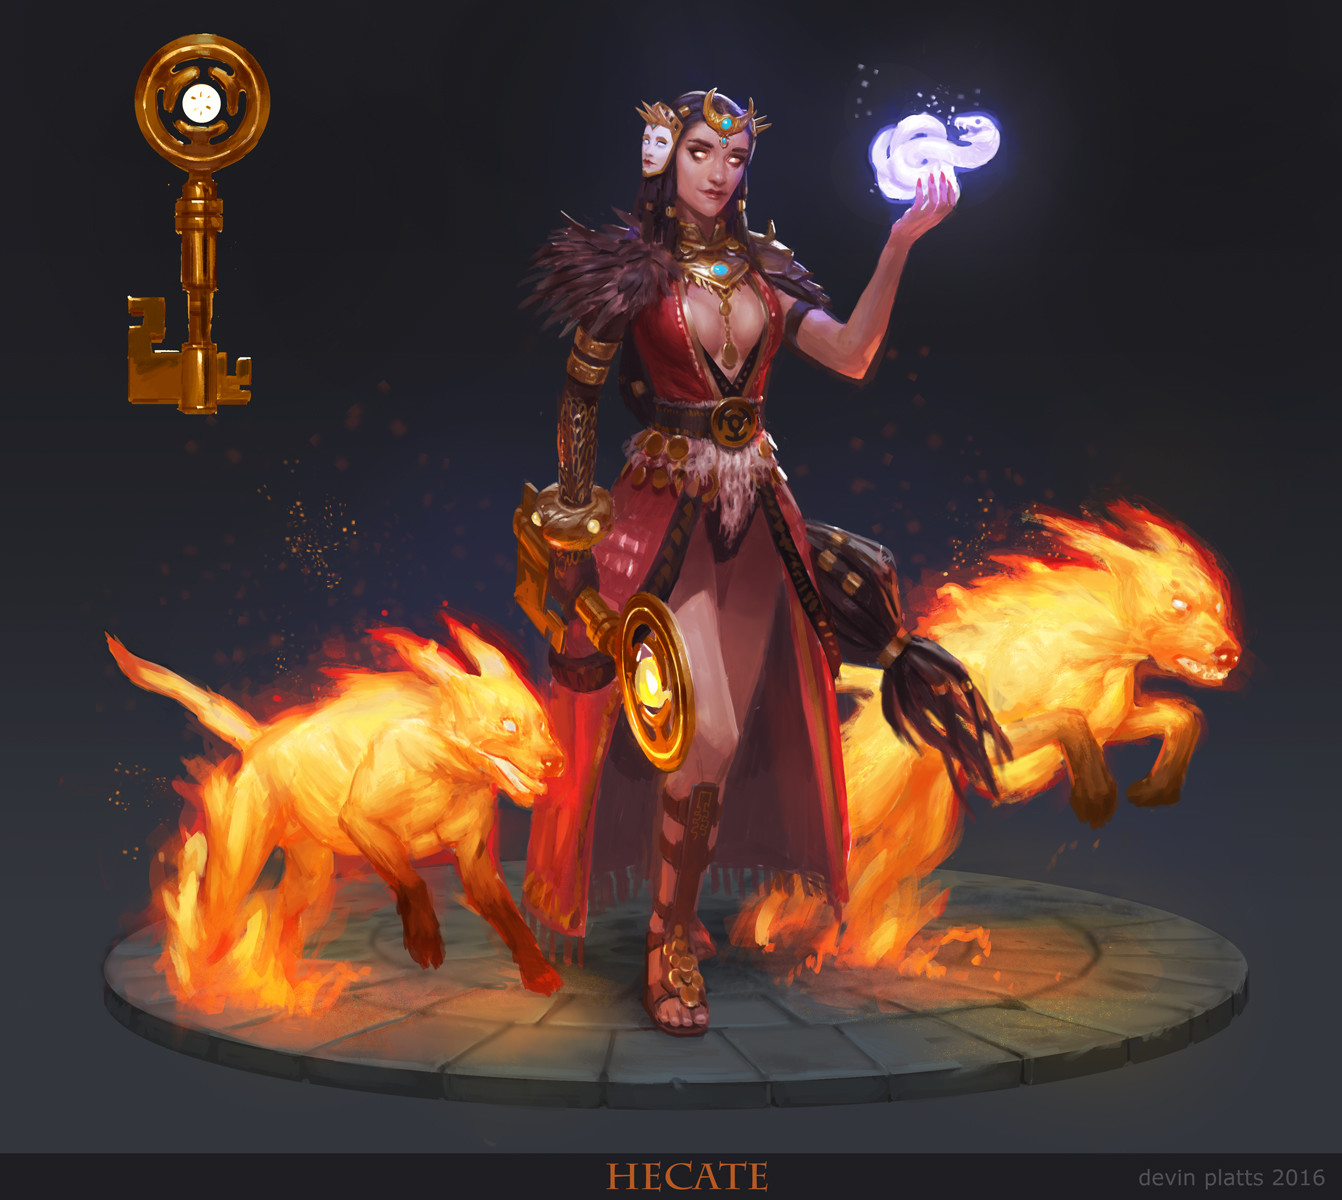 Devin platts hecate